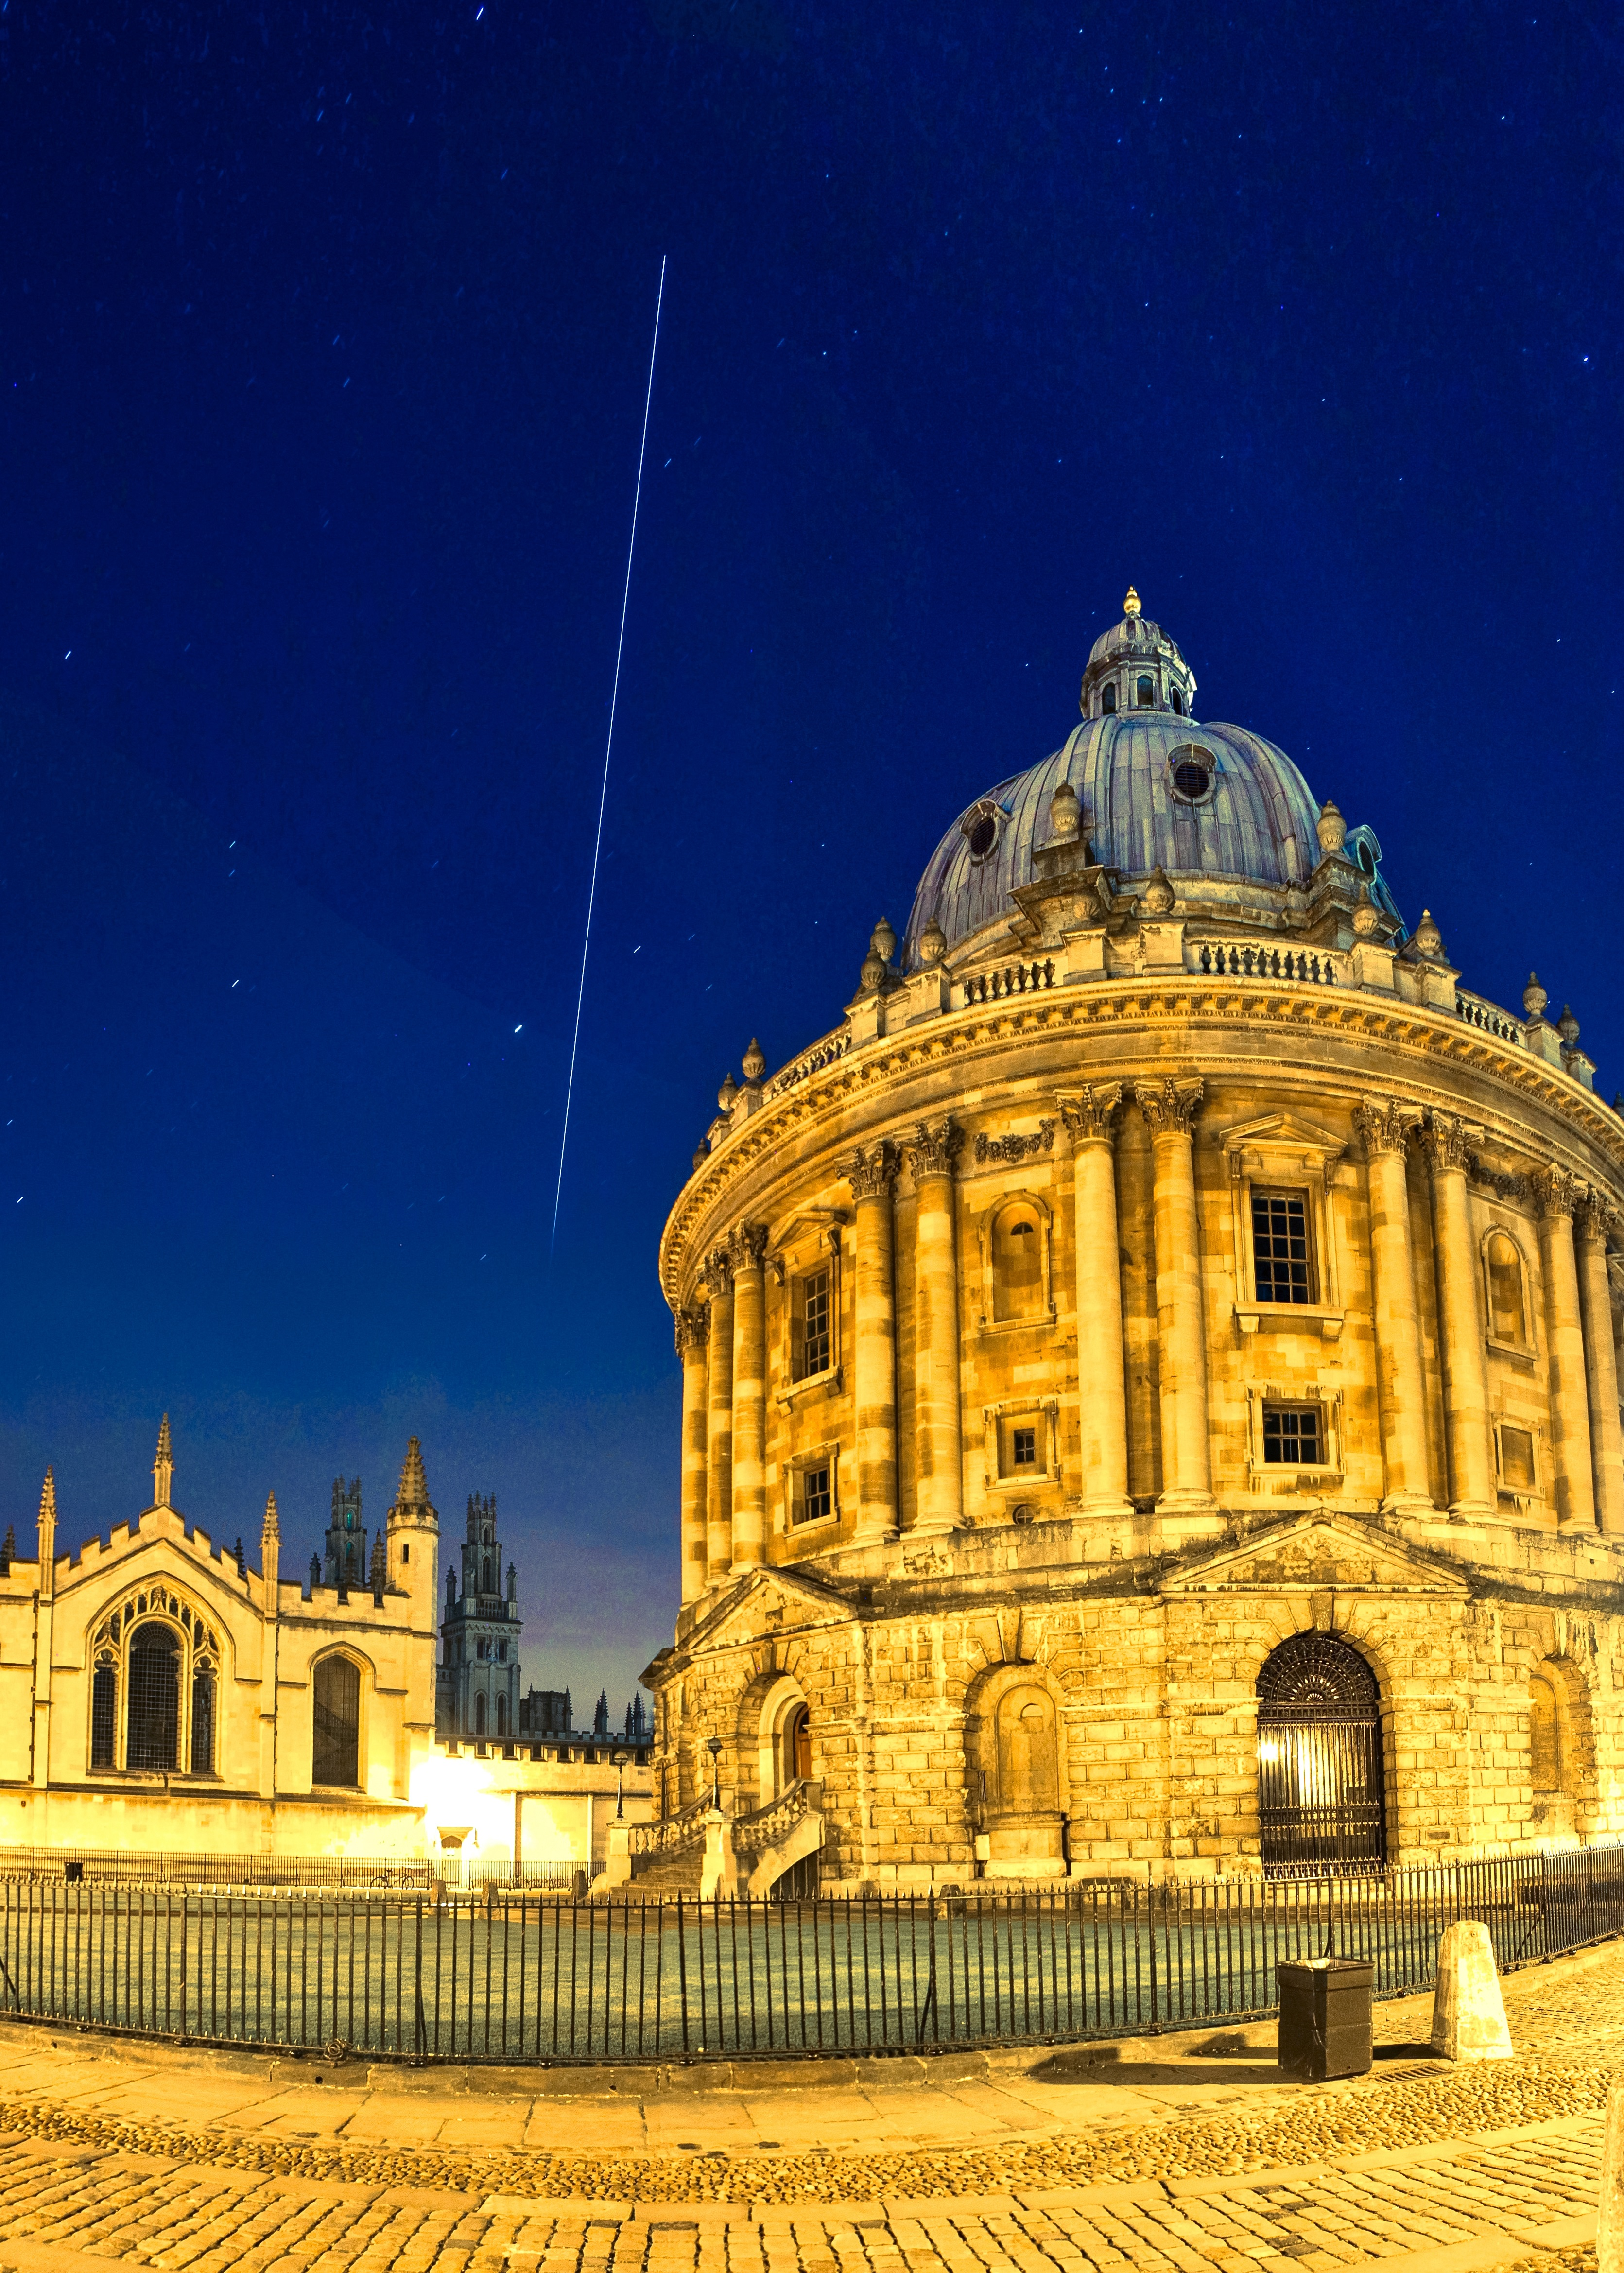 Architecture Photography Competition 2014 stargazing oxford 2014 photography competition - the winners